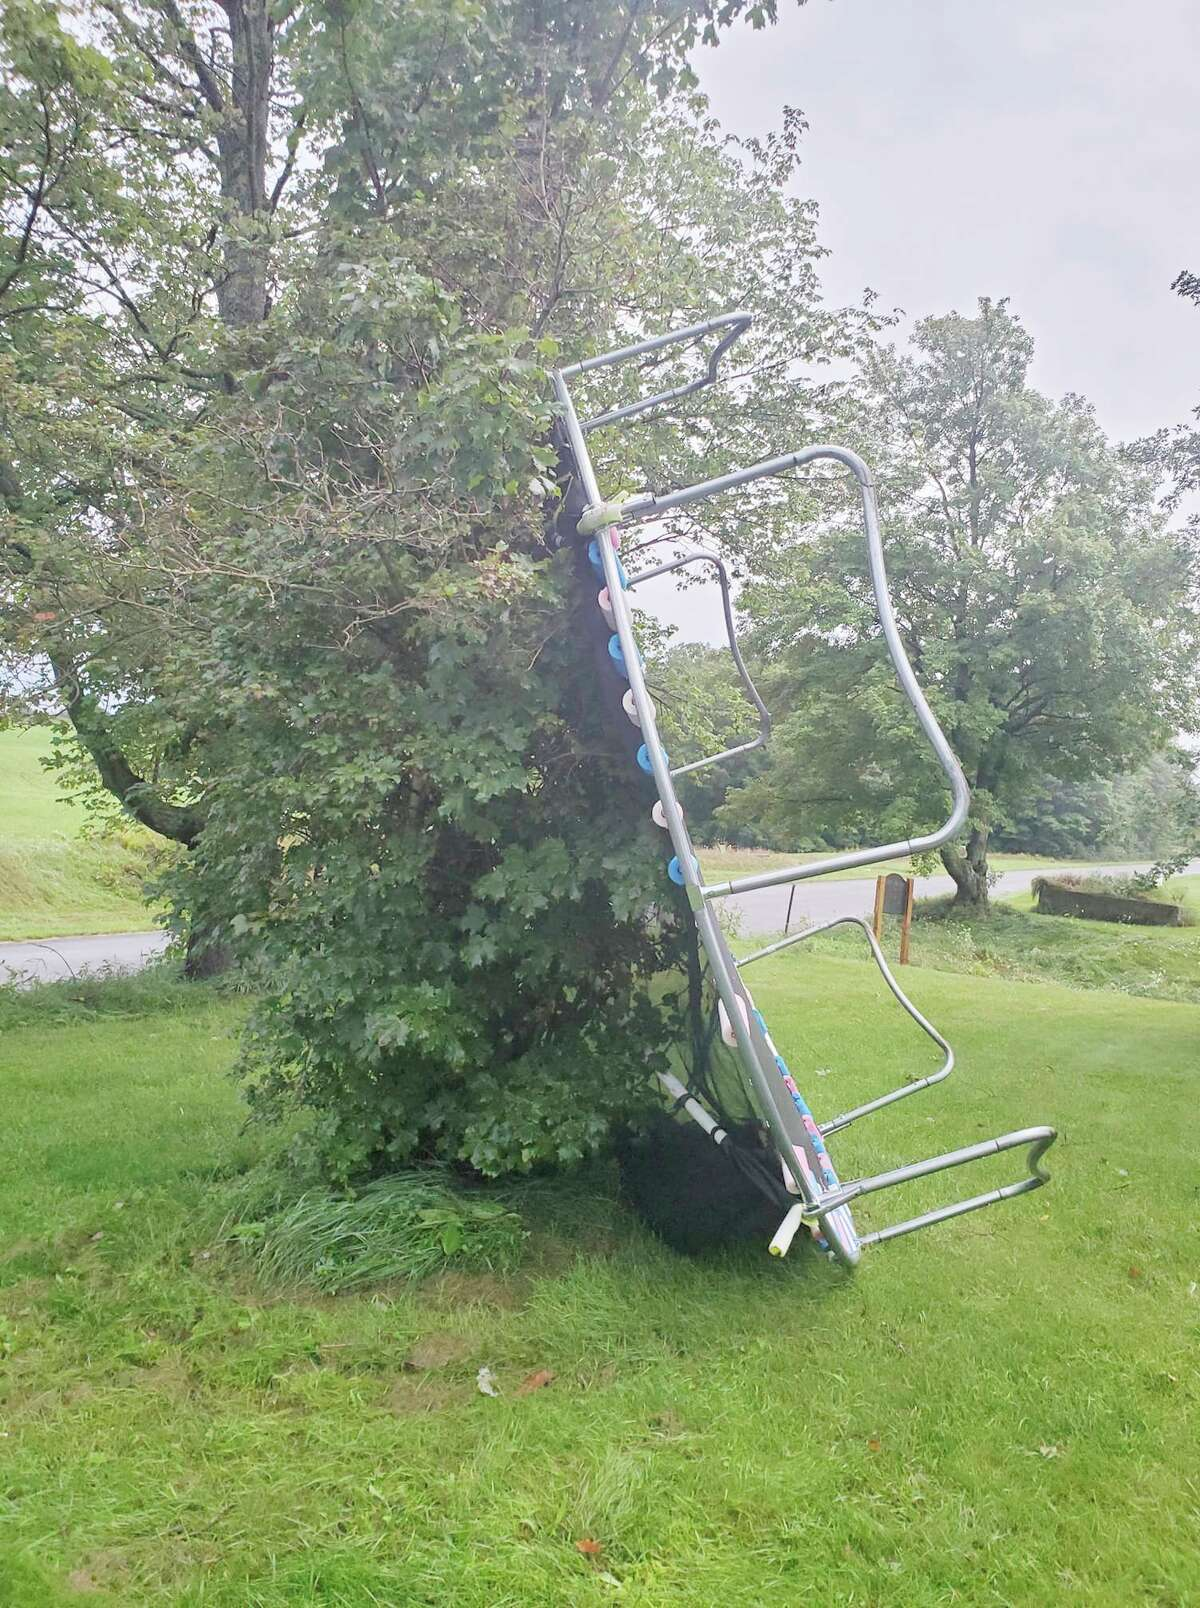 Maria Gervers shared this photo on the News Advocate's Facebook page of a trampoline blown over during a series of storms early on Saturday morning in Brown Township. (Courtesy photo/Maria Gervers)